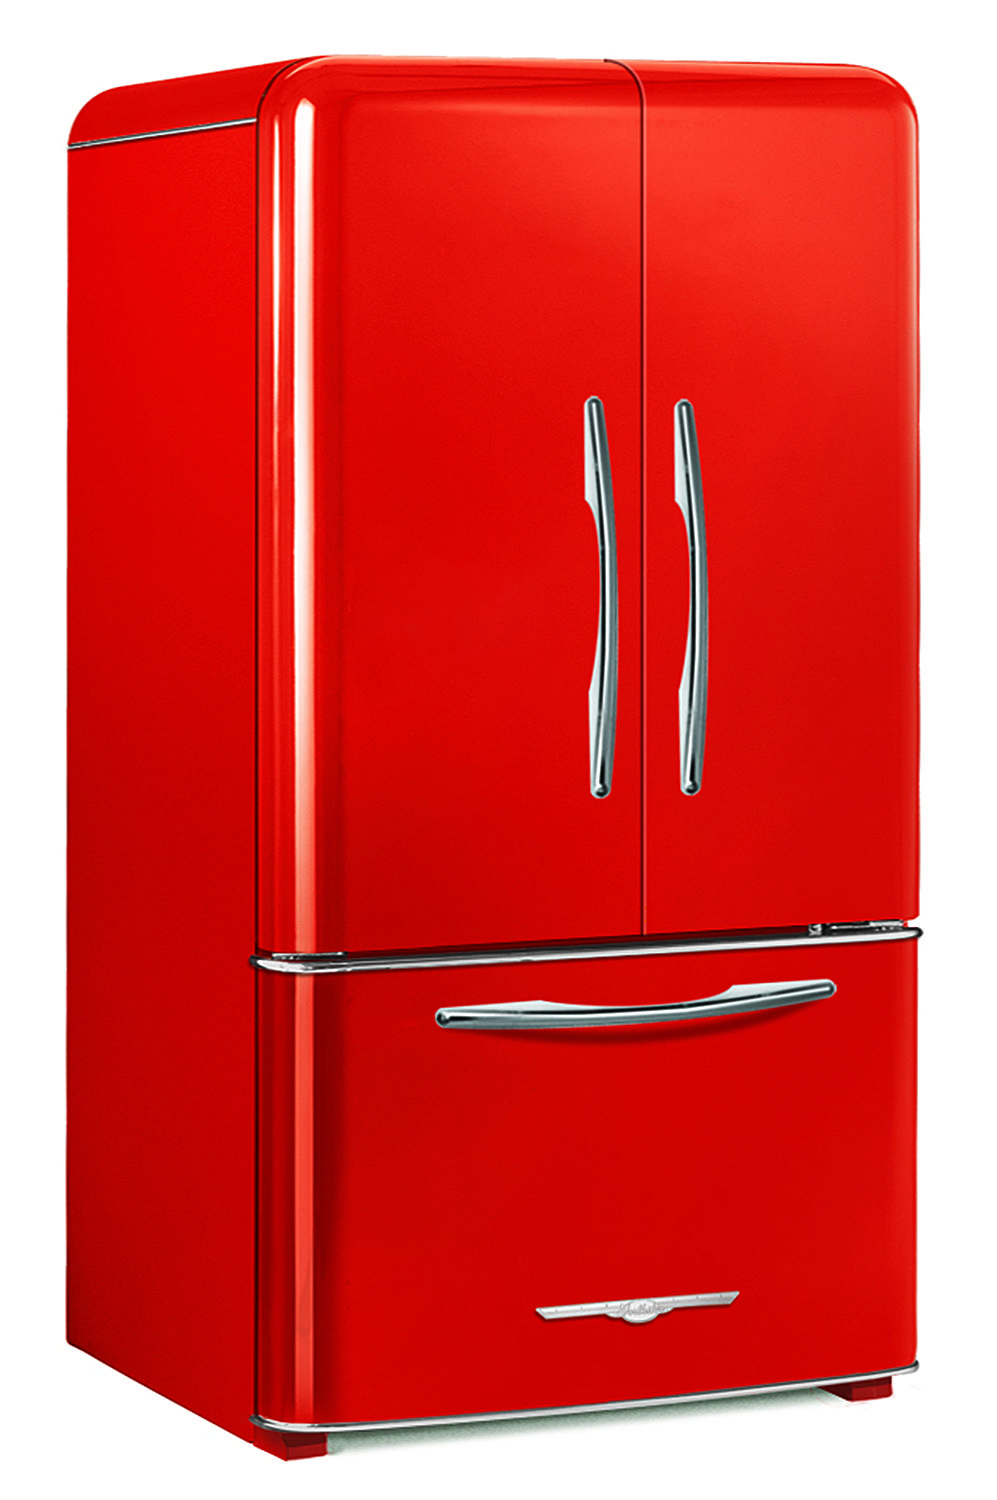 Uncategorized Candy Kitchen Appliances 1948 northstar candy red french door refrigerator kitchen refrigerator